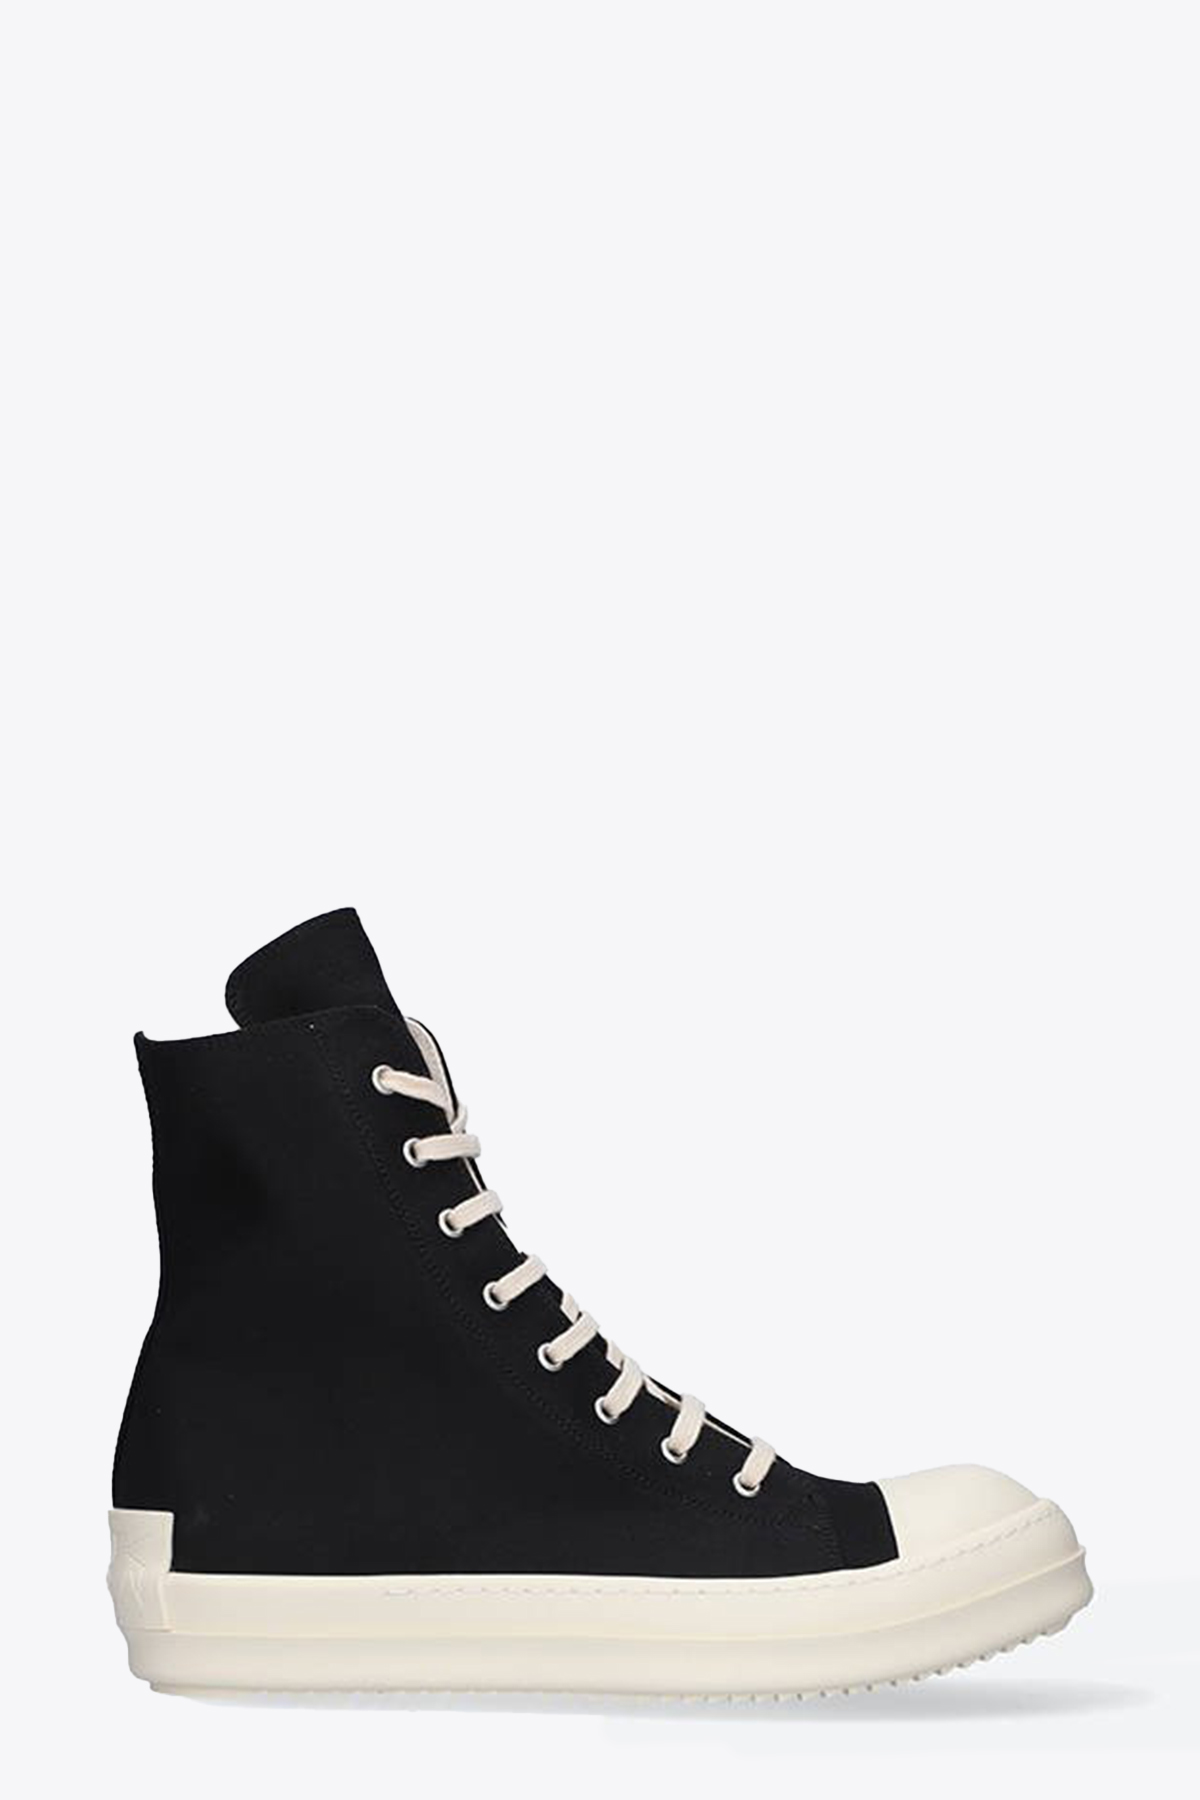 LACE UP HIGH TOP SNEAKERS RICK OWENS-DRKSHDW | 10000039 | DU02A3800 NDKEH2 SNEAKERS911